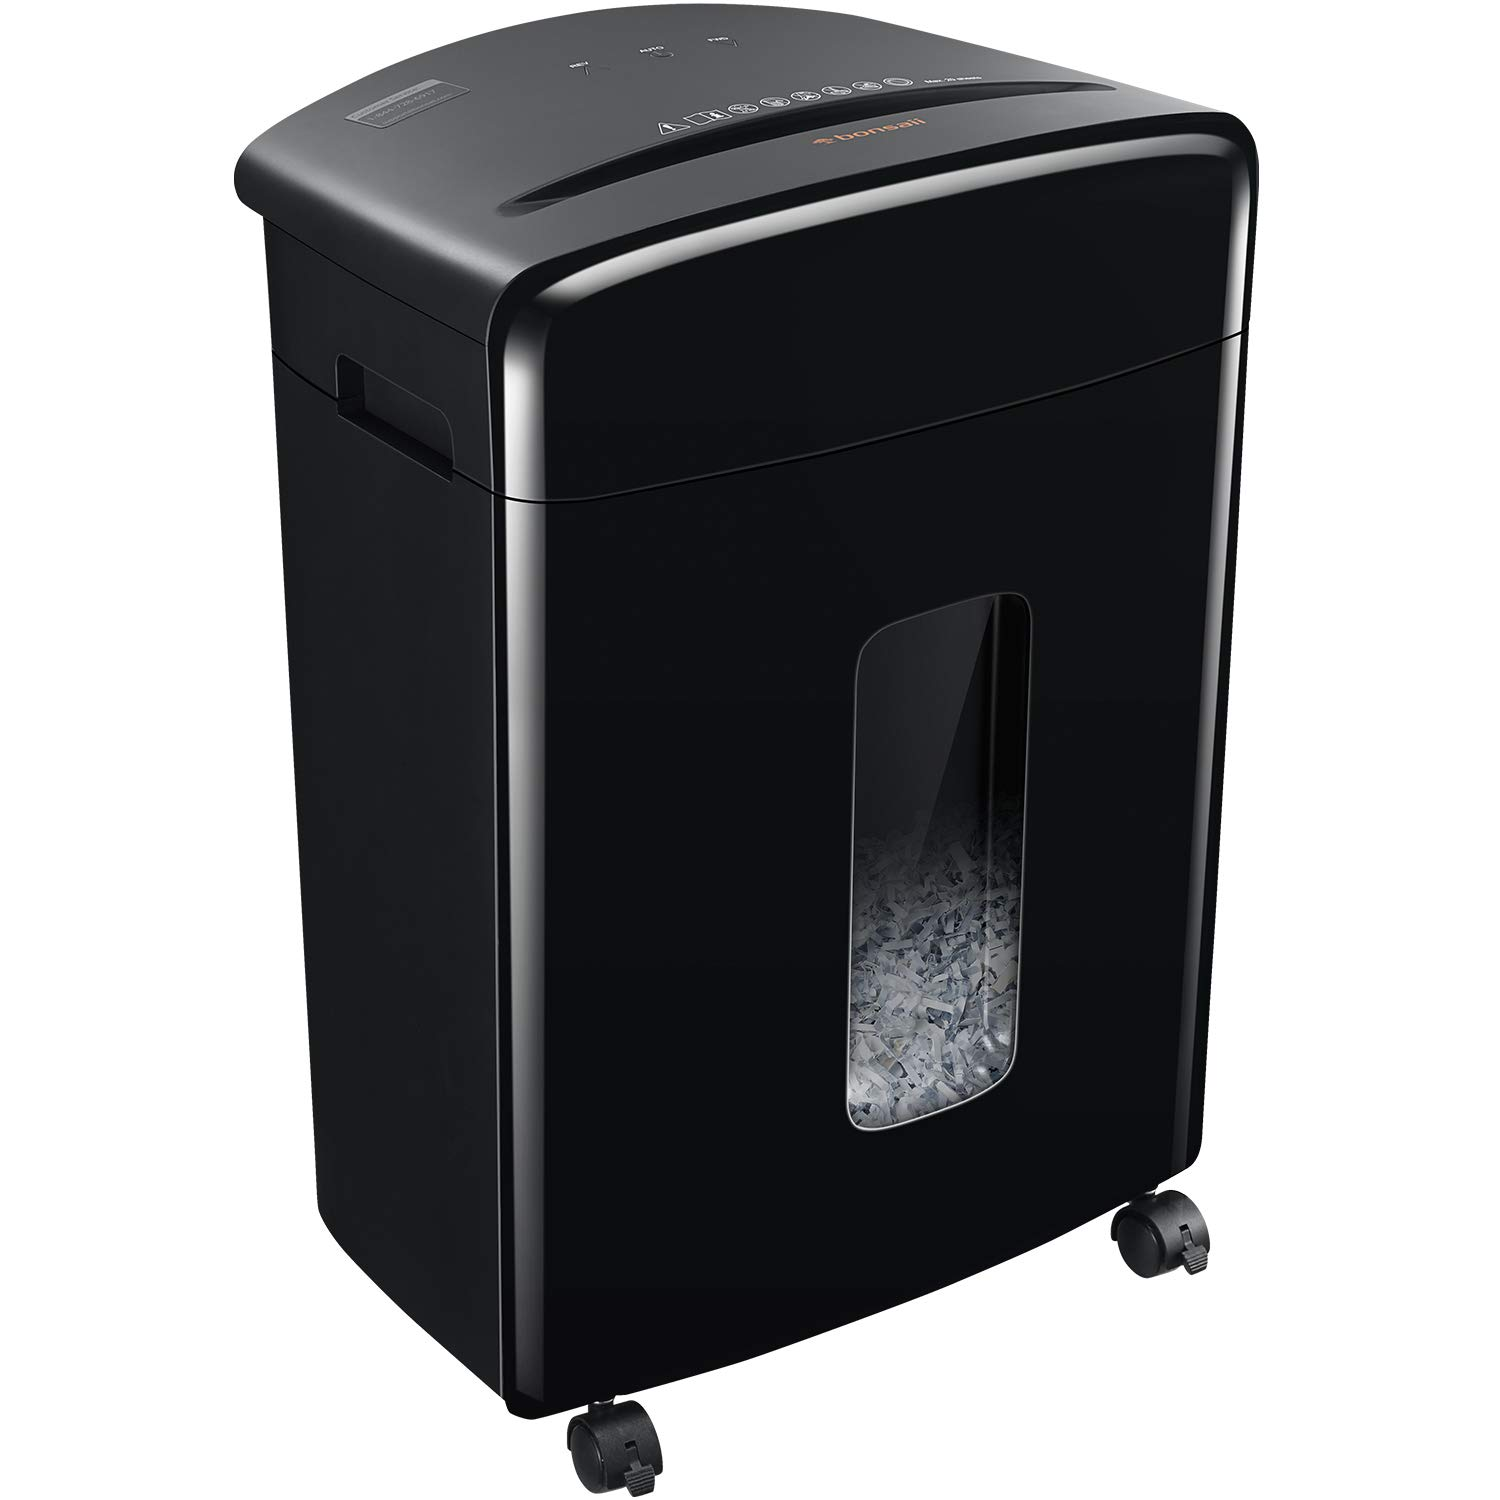 Bonsaii 20-Sheet Heavy Duty Cross-Cut Paper/CD/Credit Card Shredder with 6.6 Gallon Pullout Basket and 4 Casters, 20 Minutes Running Time, Black (C222-A) by bonsaii